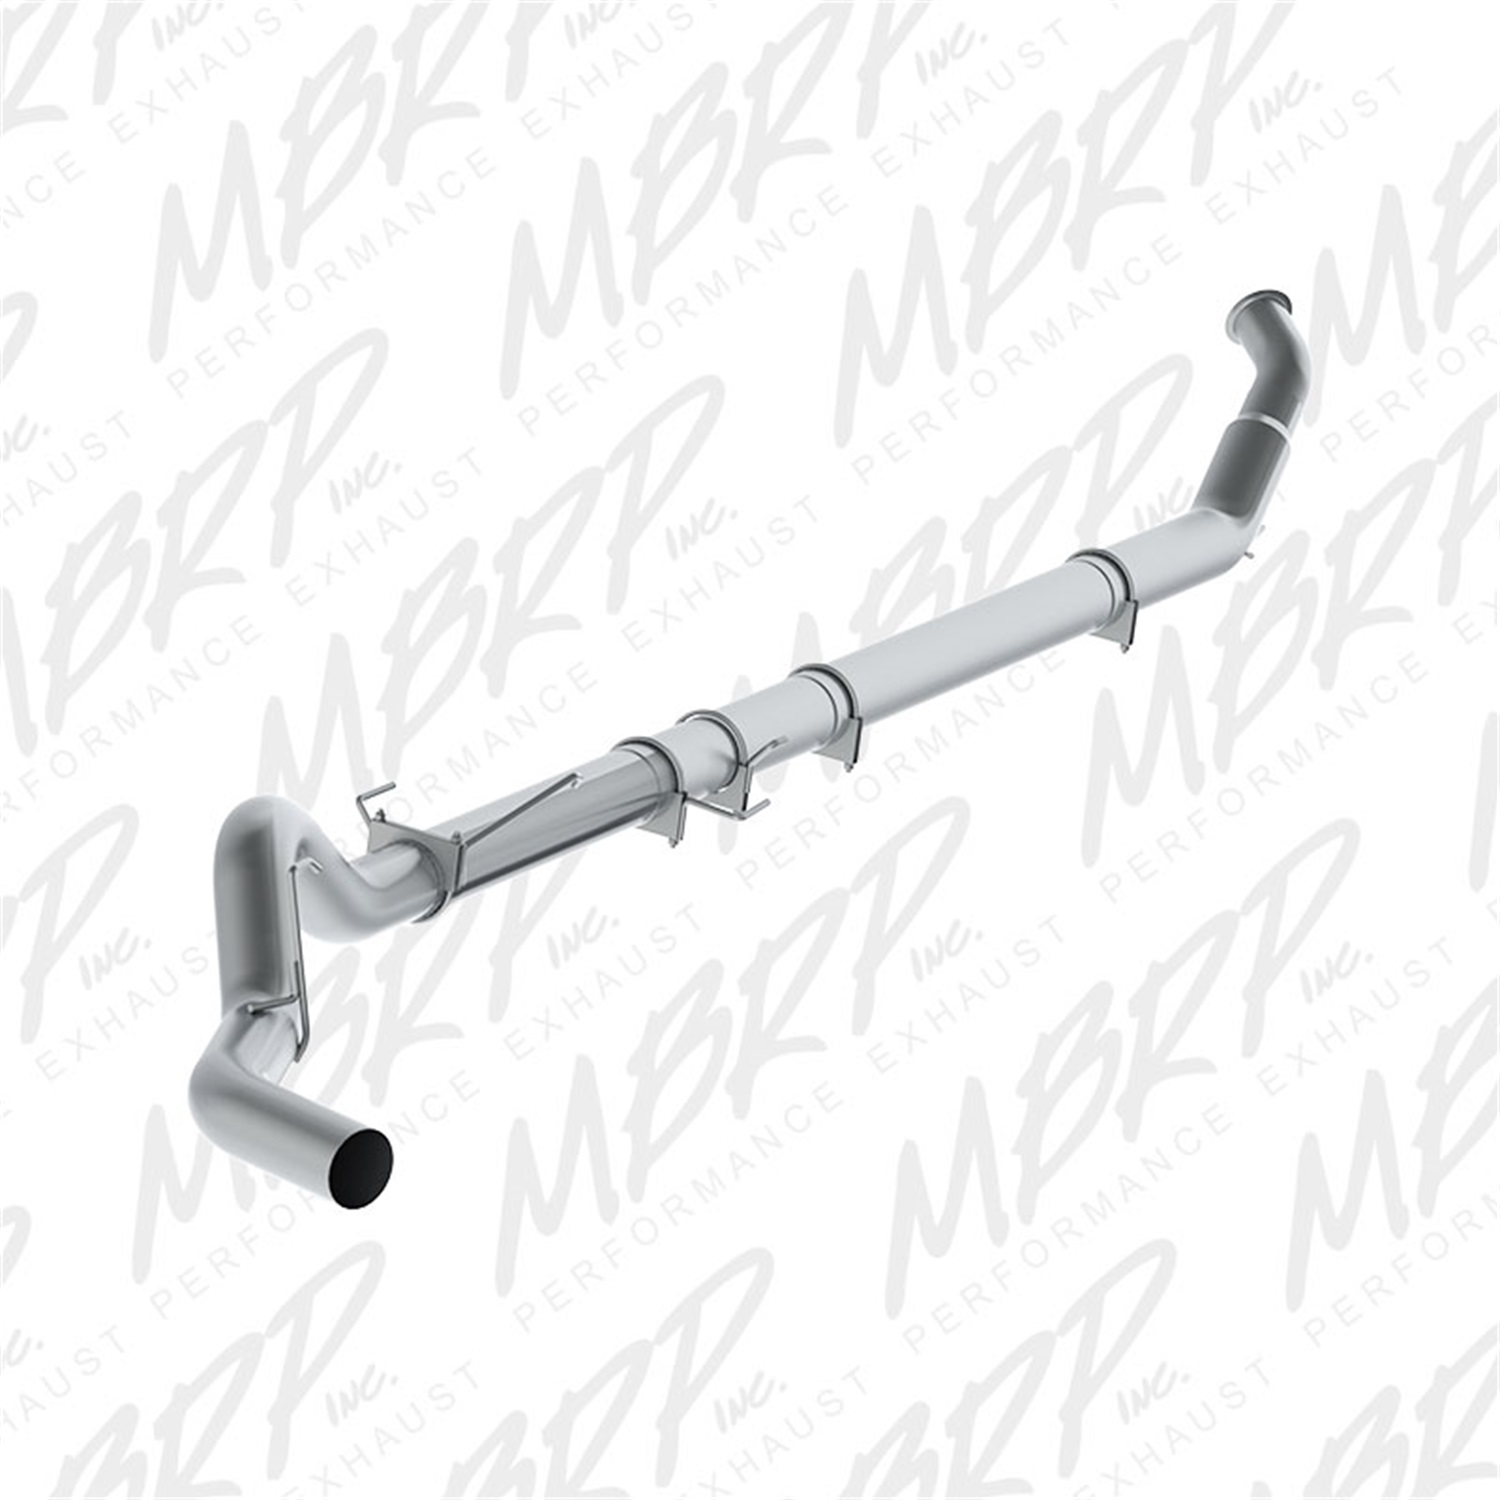 Mbrp Exhaust S Slm Slm Series Turbo Back Exhaust System